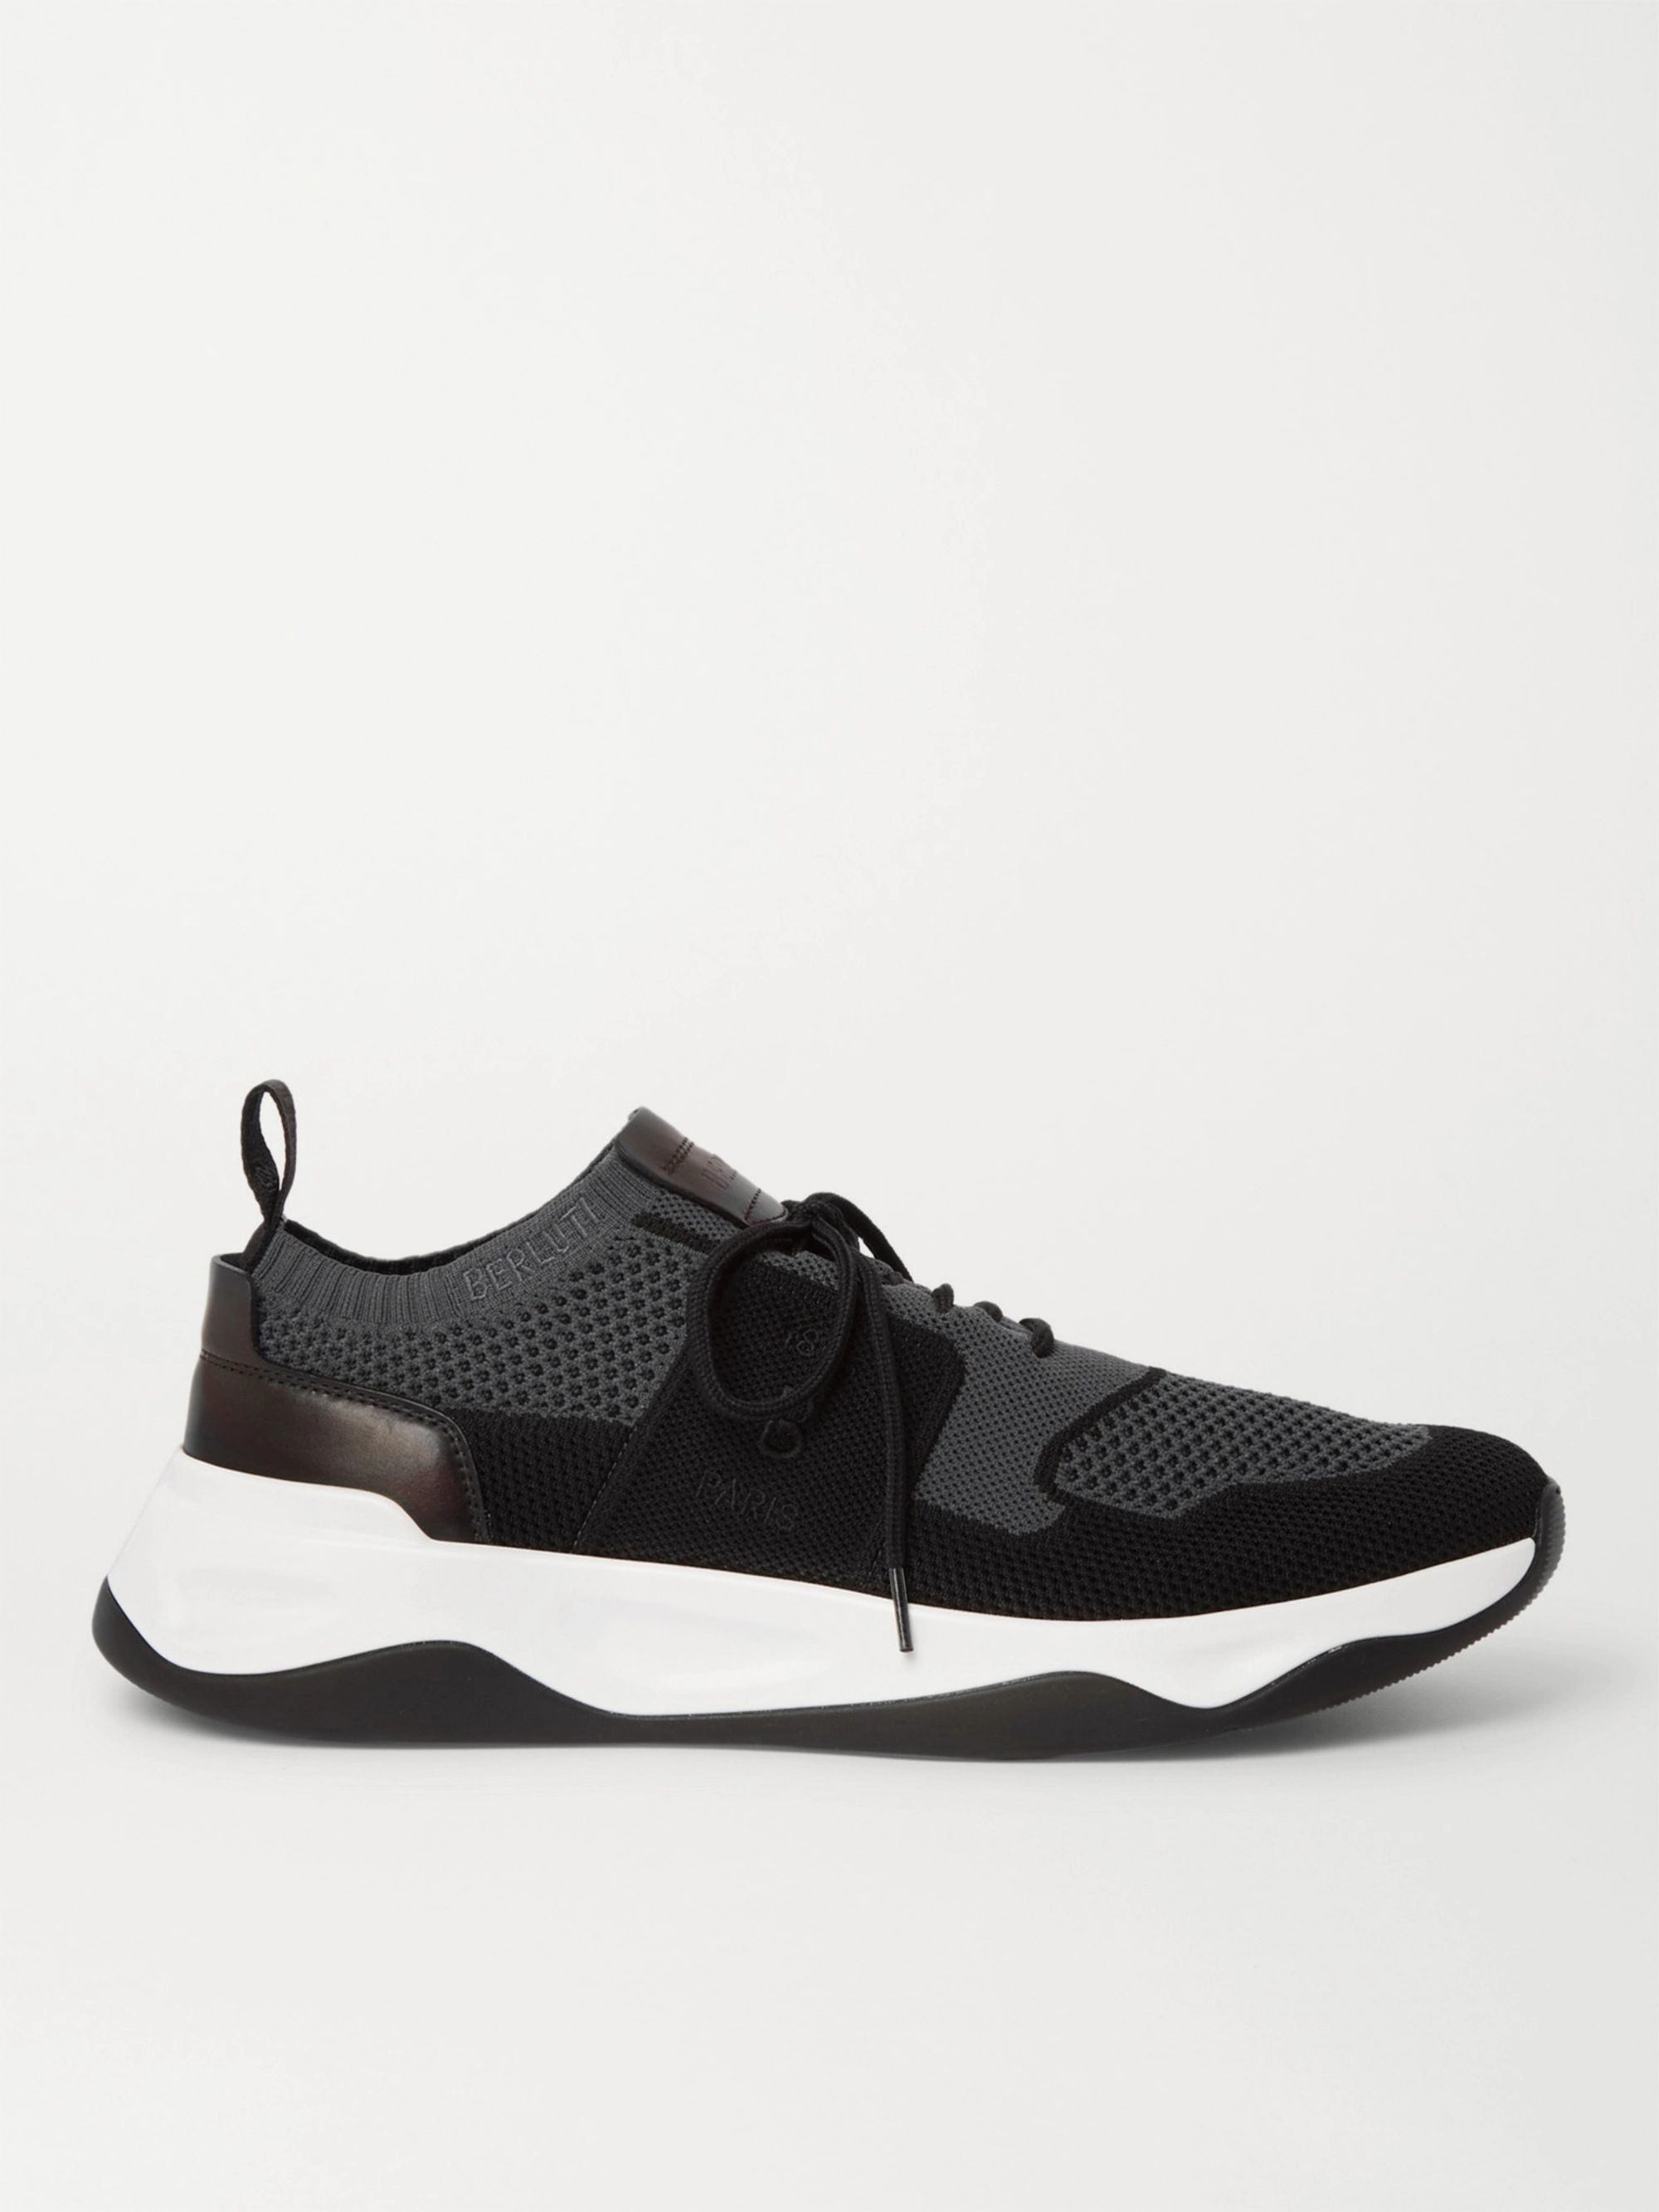 Berluti Shadow Leather-Trimmed Stretch-Knit Sneakers